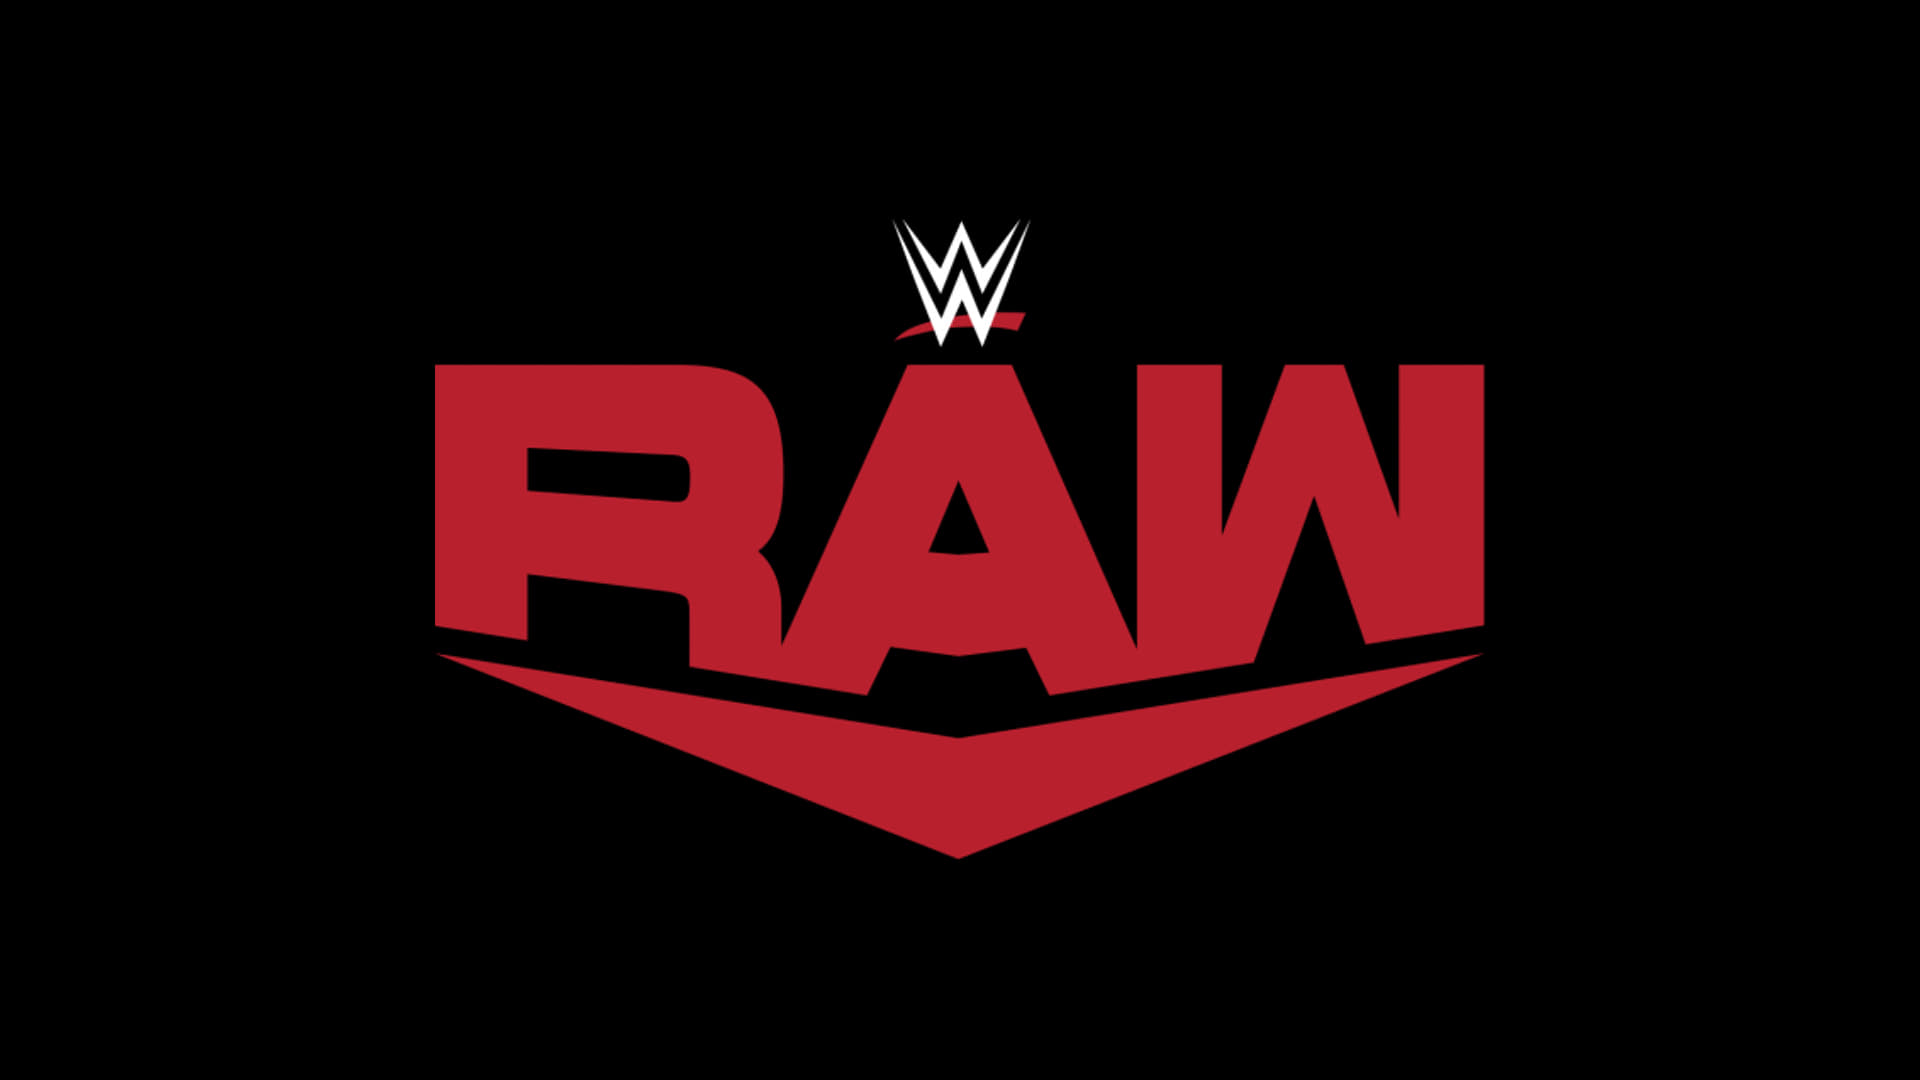 WWE Raw - Season 6 Episode 40 : RAW is WAR 280